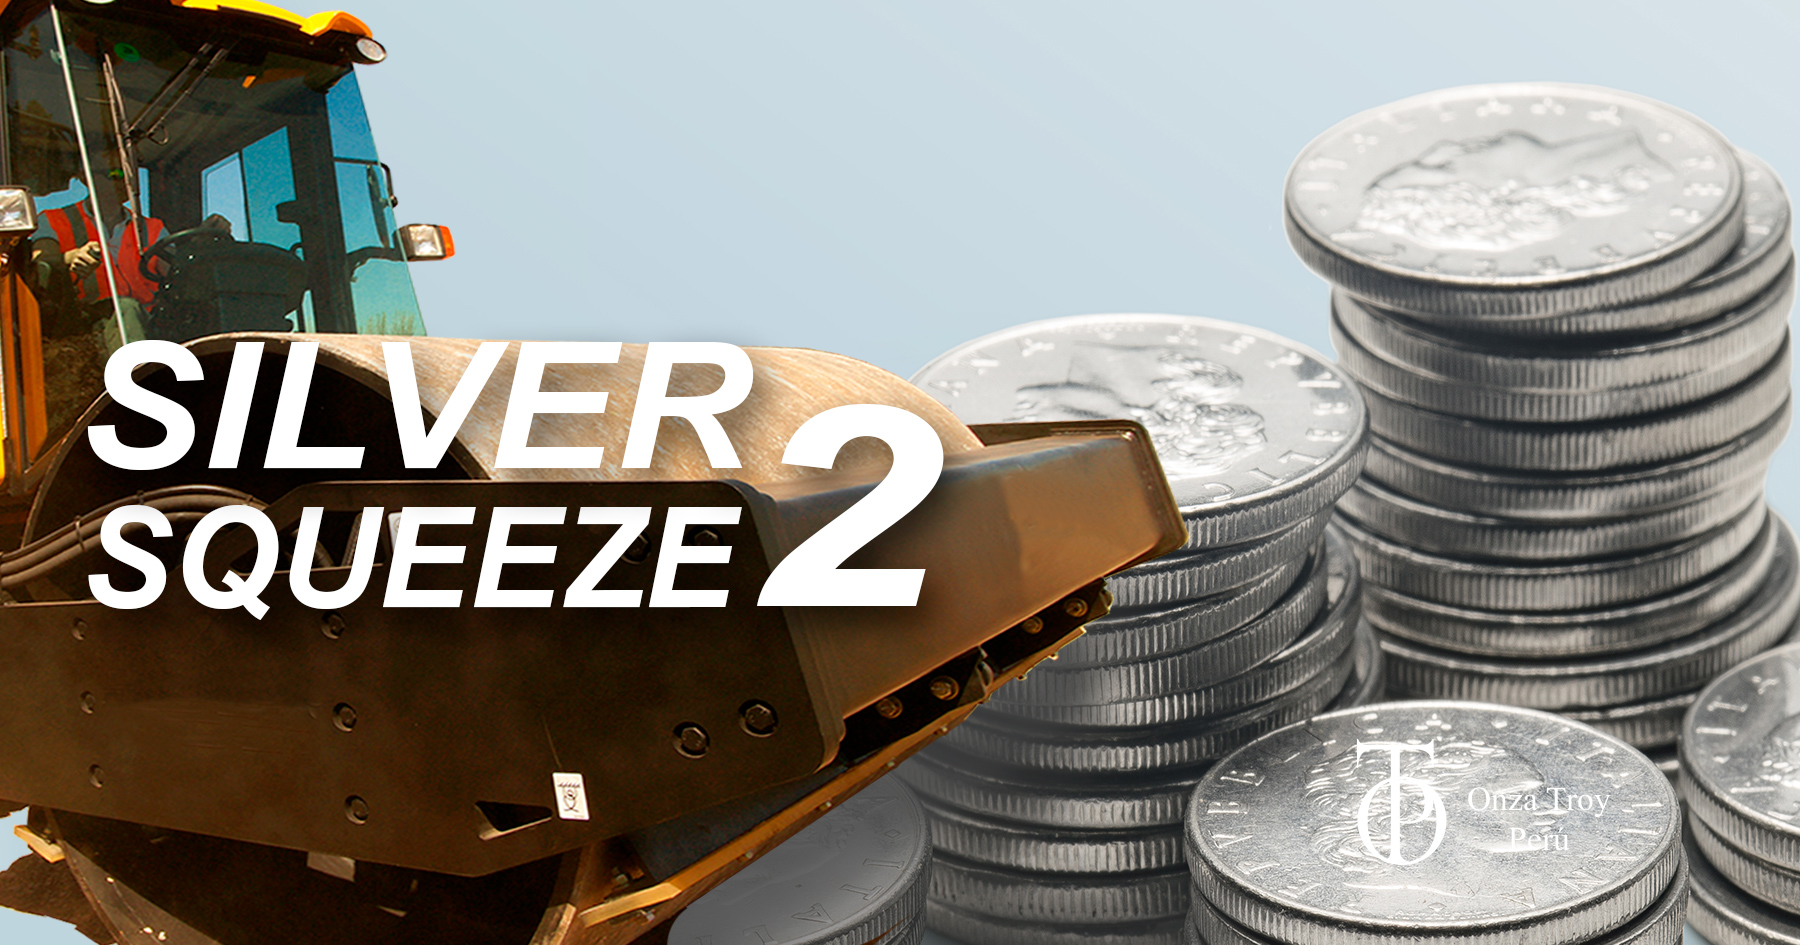 SILVER SQUEEZE 2